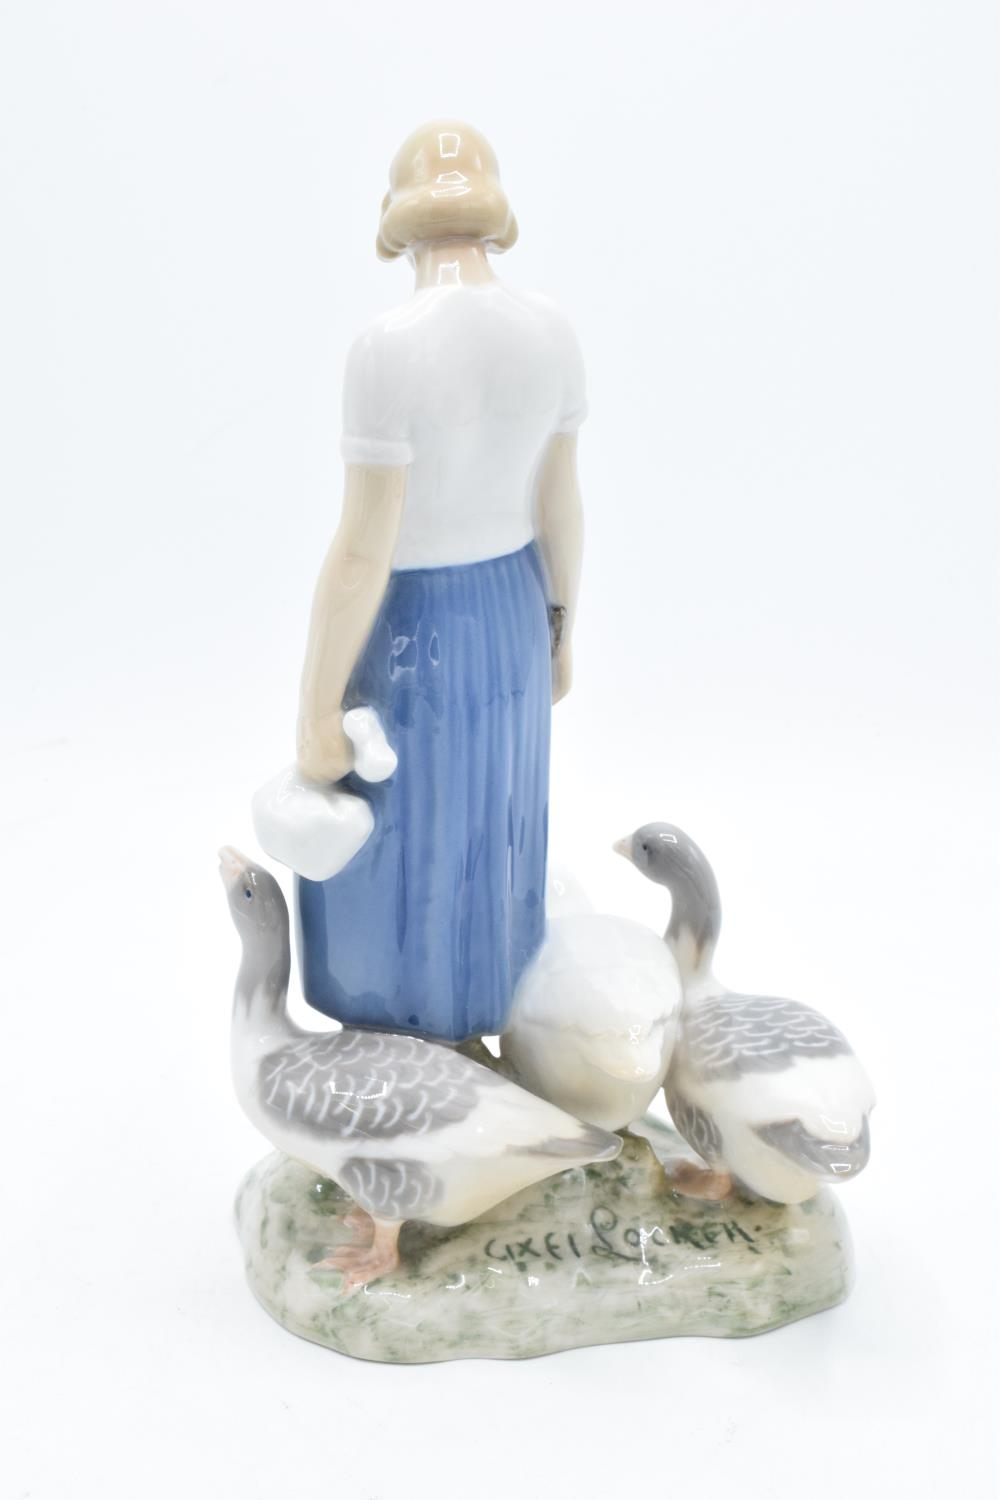 Bing and Grondahl figure Girl with Geese 2254 by Axel Locher. In good condition with no obvious - Image 2 of 3